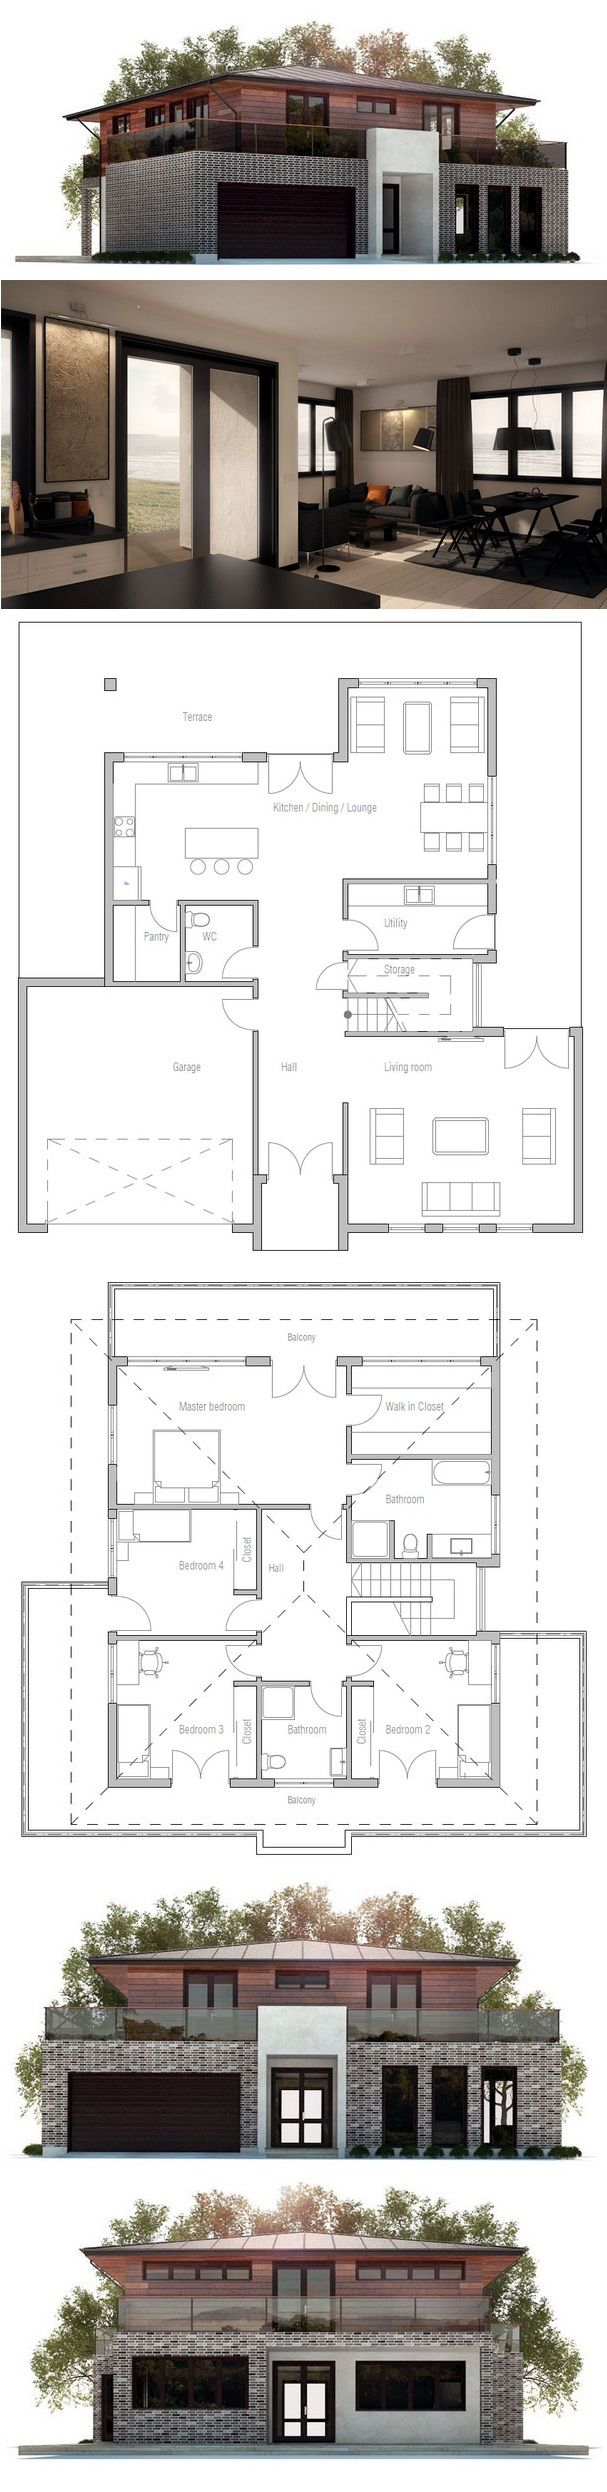 best 25+ japanese style house ideas on pinterest | japanese style